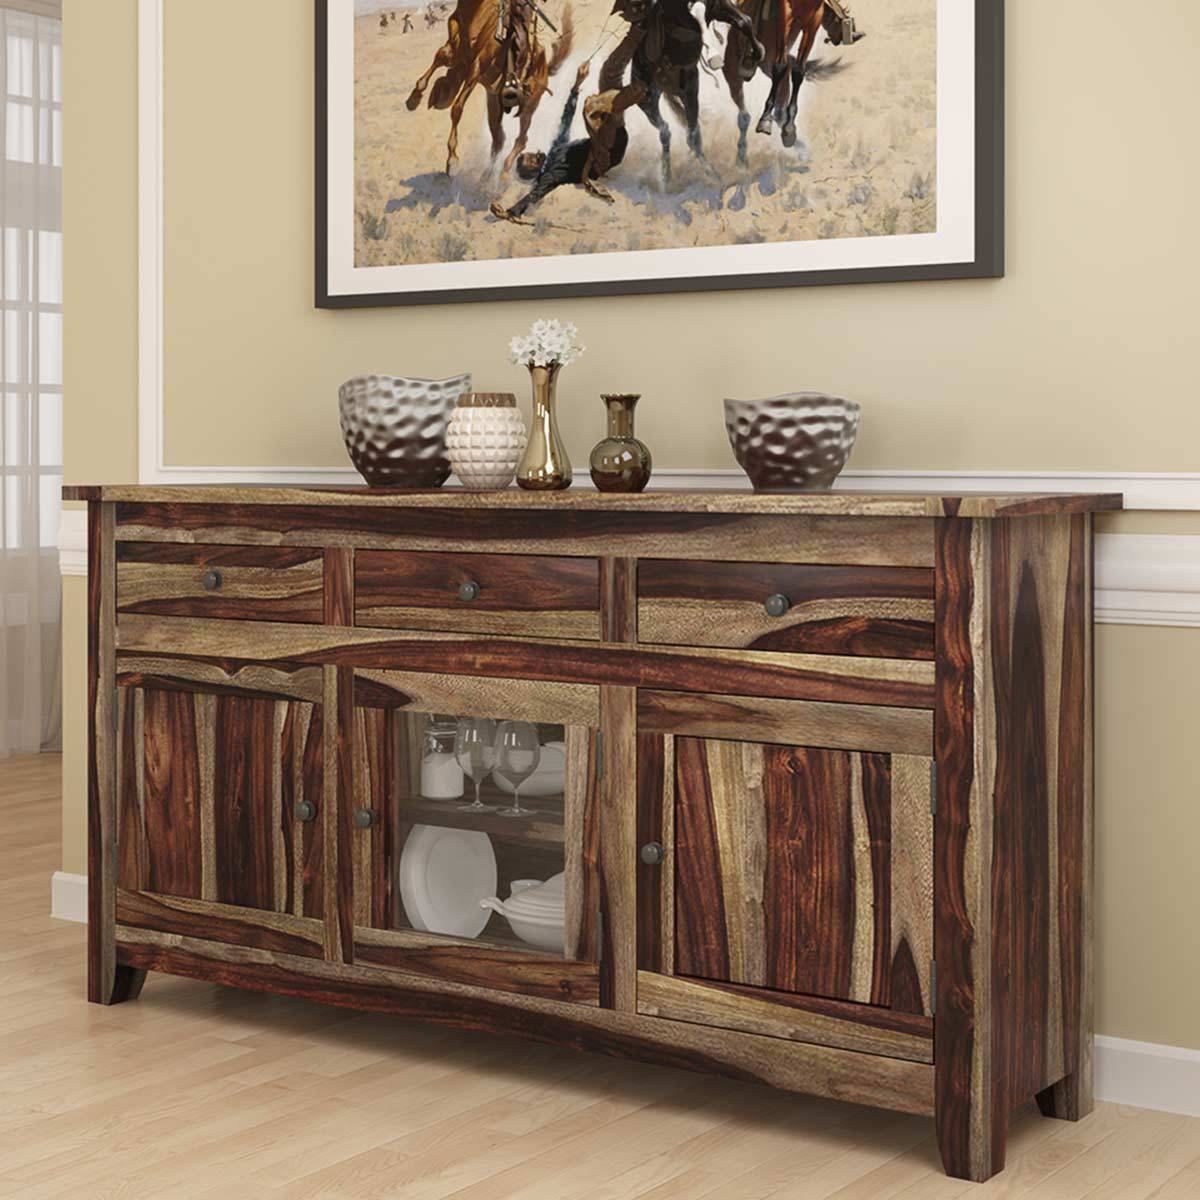 Rustic Buffets Sideboards Within Rustic Buffet Sideboards (View 8 of 15)